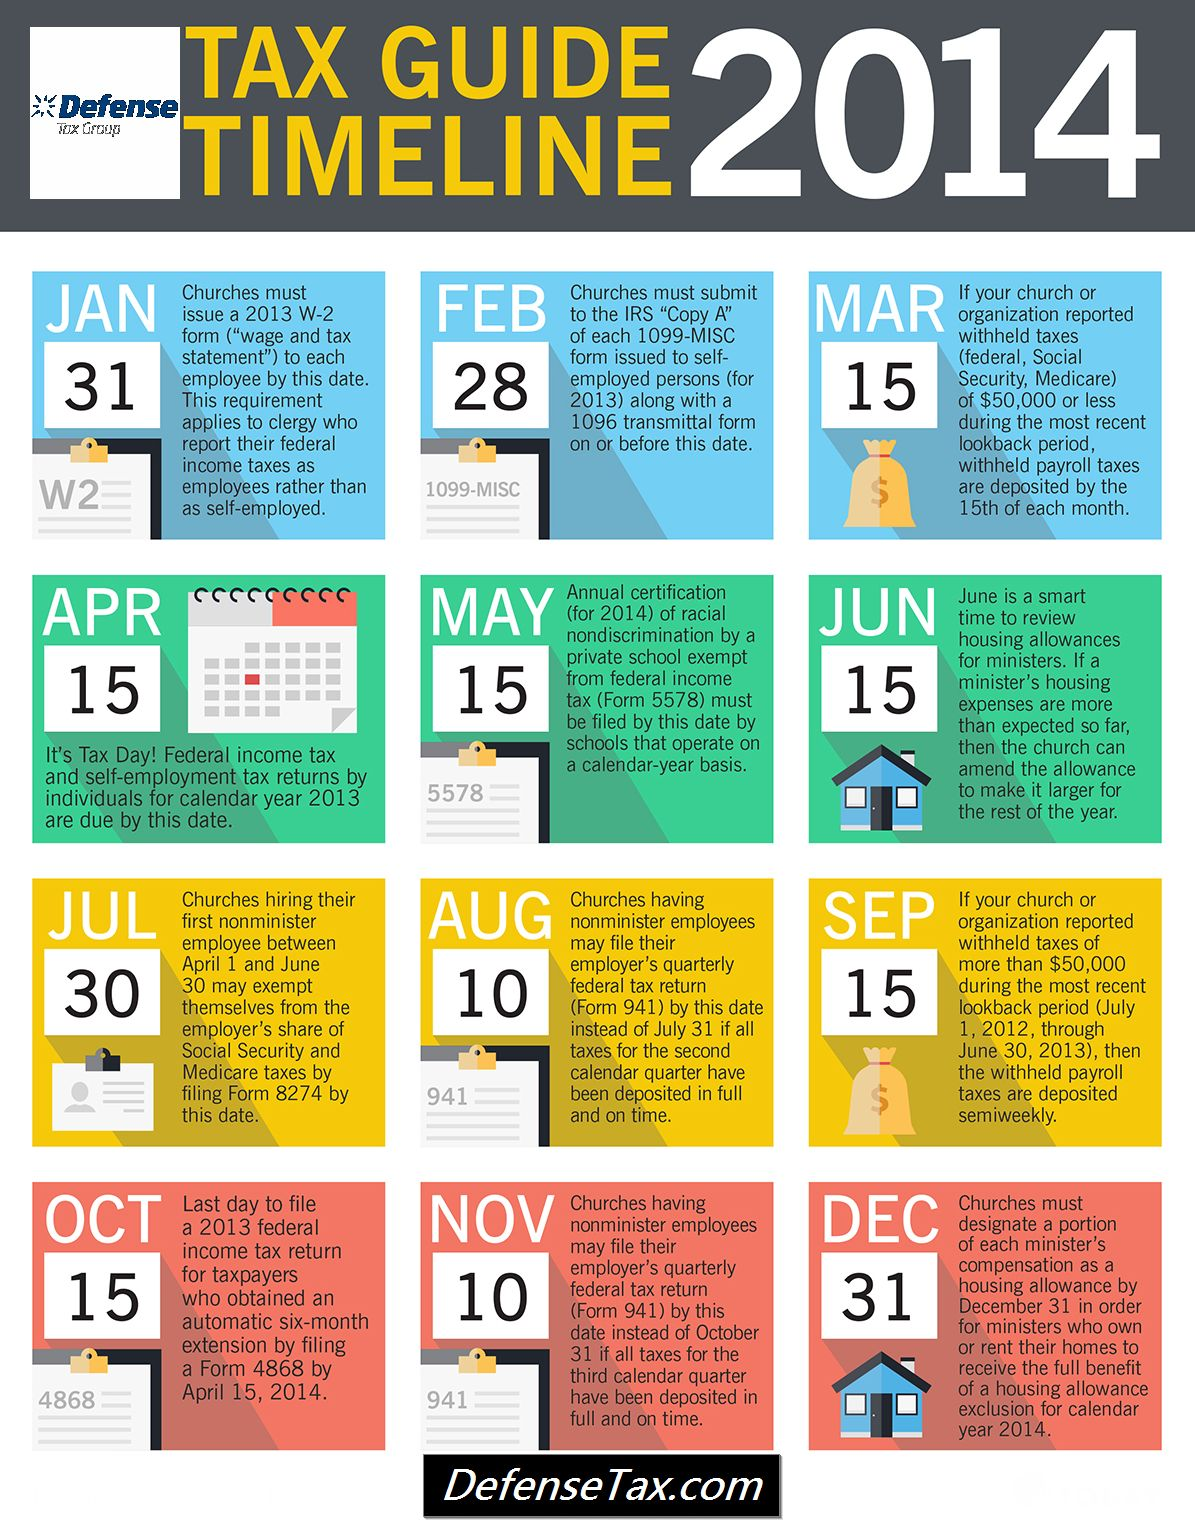 Tax Guide Timeline Infographic